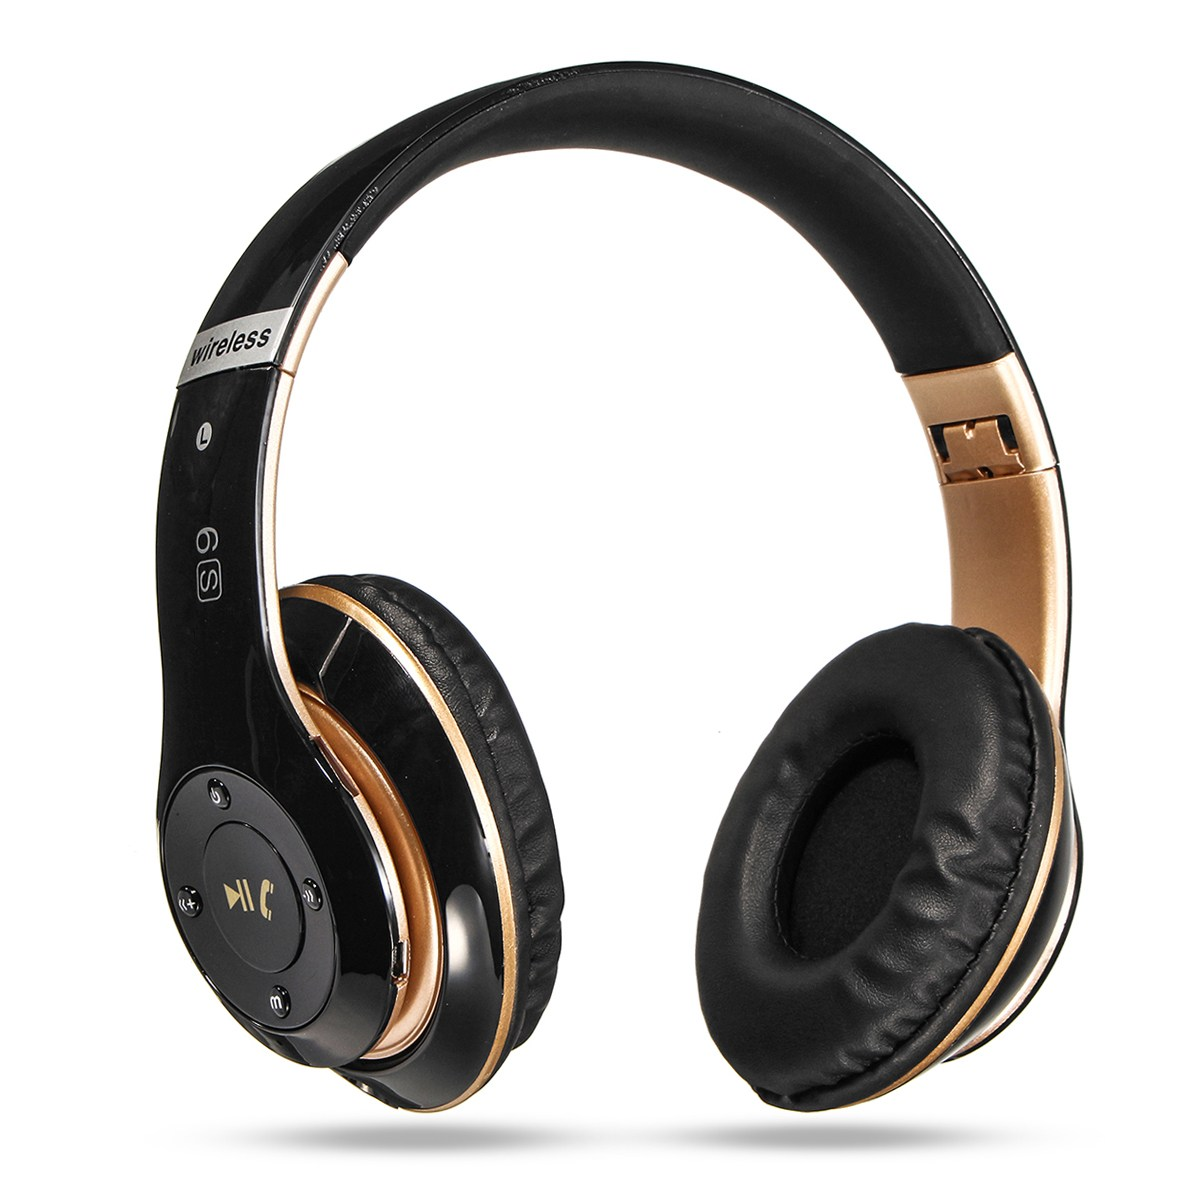 Color 6S 3.5MM Headset Wireless Bluetooth Headphone Stereo Heavy Bass Earphones Ultimate TF Card Slot Chargable Folding Headset